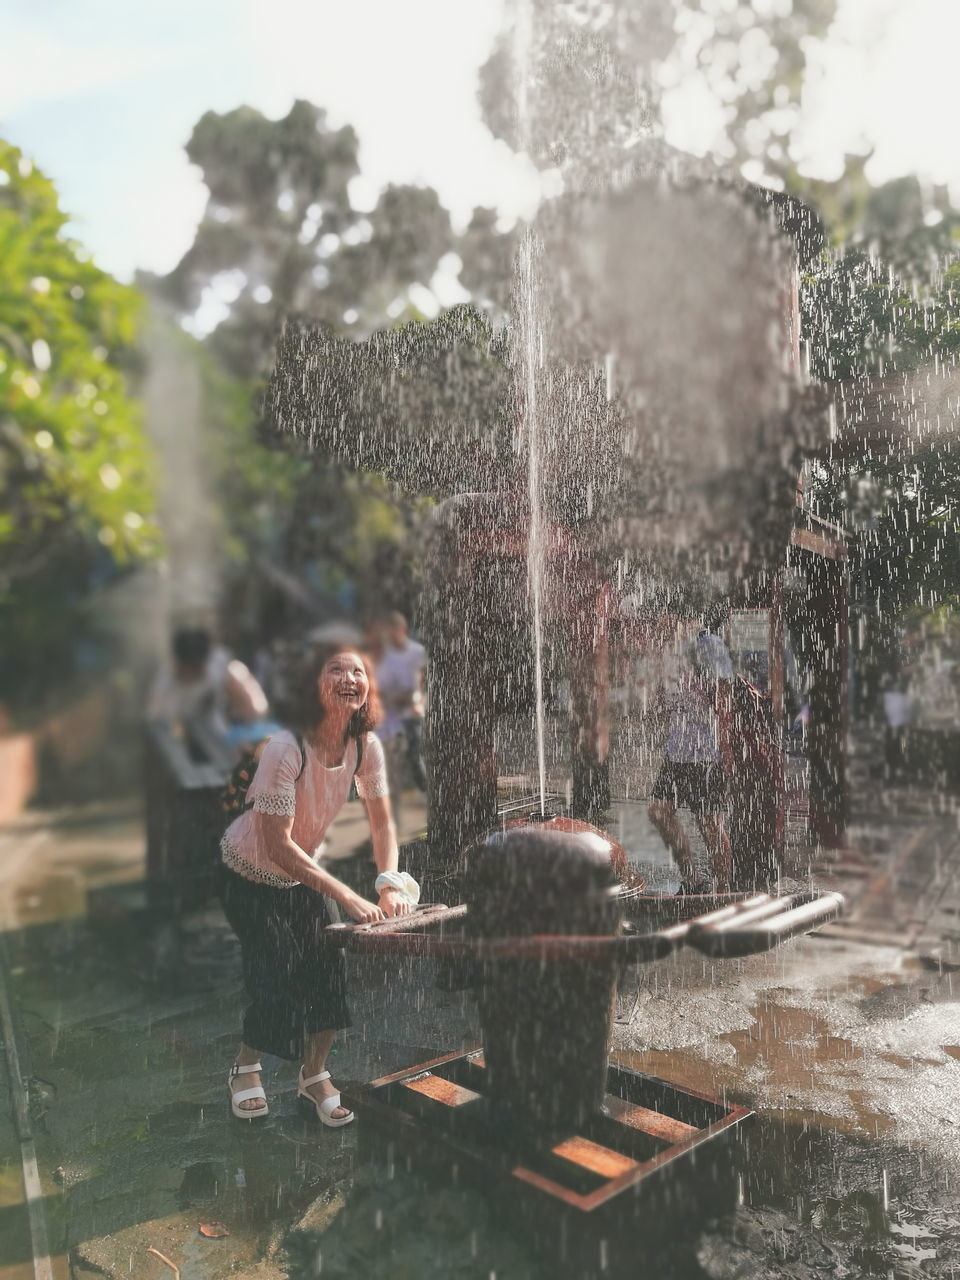 water, motion, fountain, splashing, spraying, wet, refreshment, real people, drop, leisure activity, day, outdoors, lifestyles, young women, happiness, fun, drinking fountain, young adult, full length, one person, tree, standing, nature, freshness, sky, people